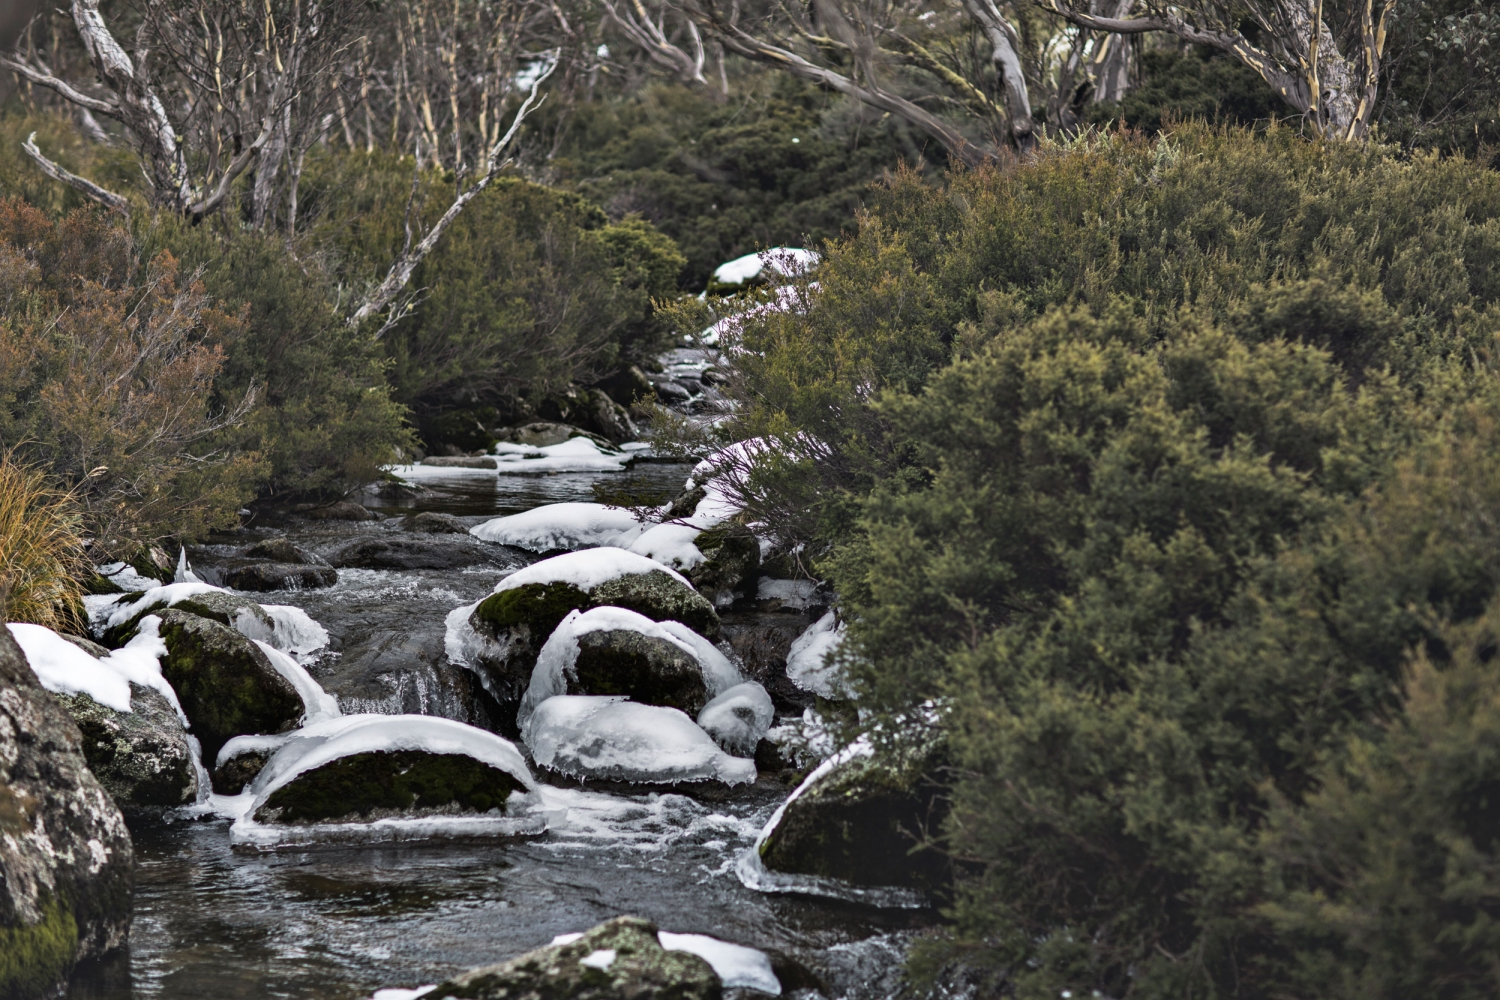 Sara-knit-mr-mittens-thredbo-stream